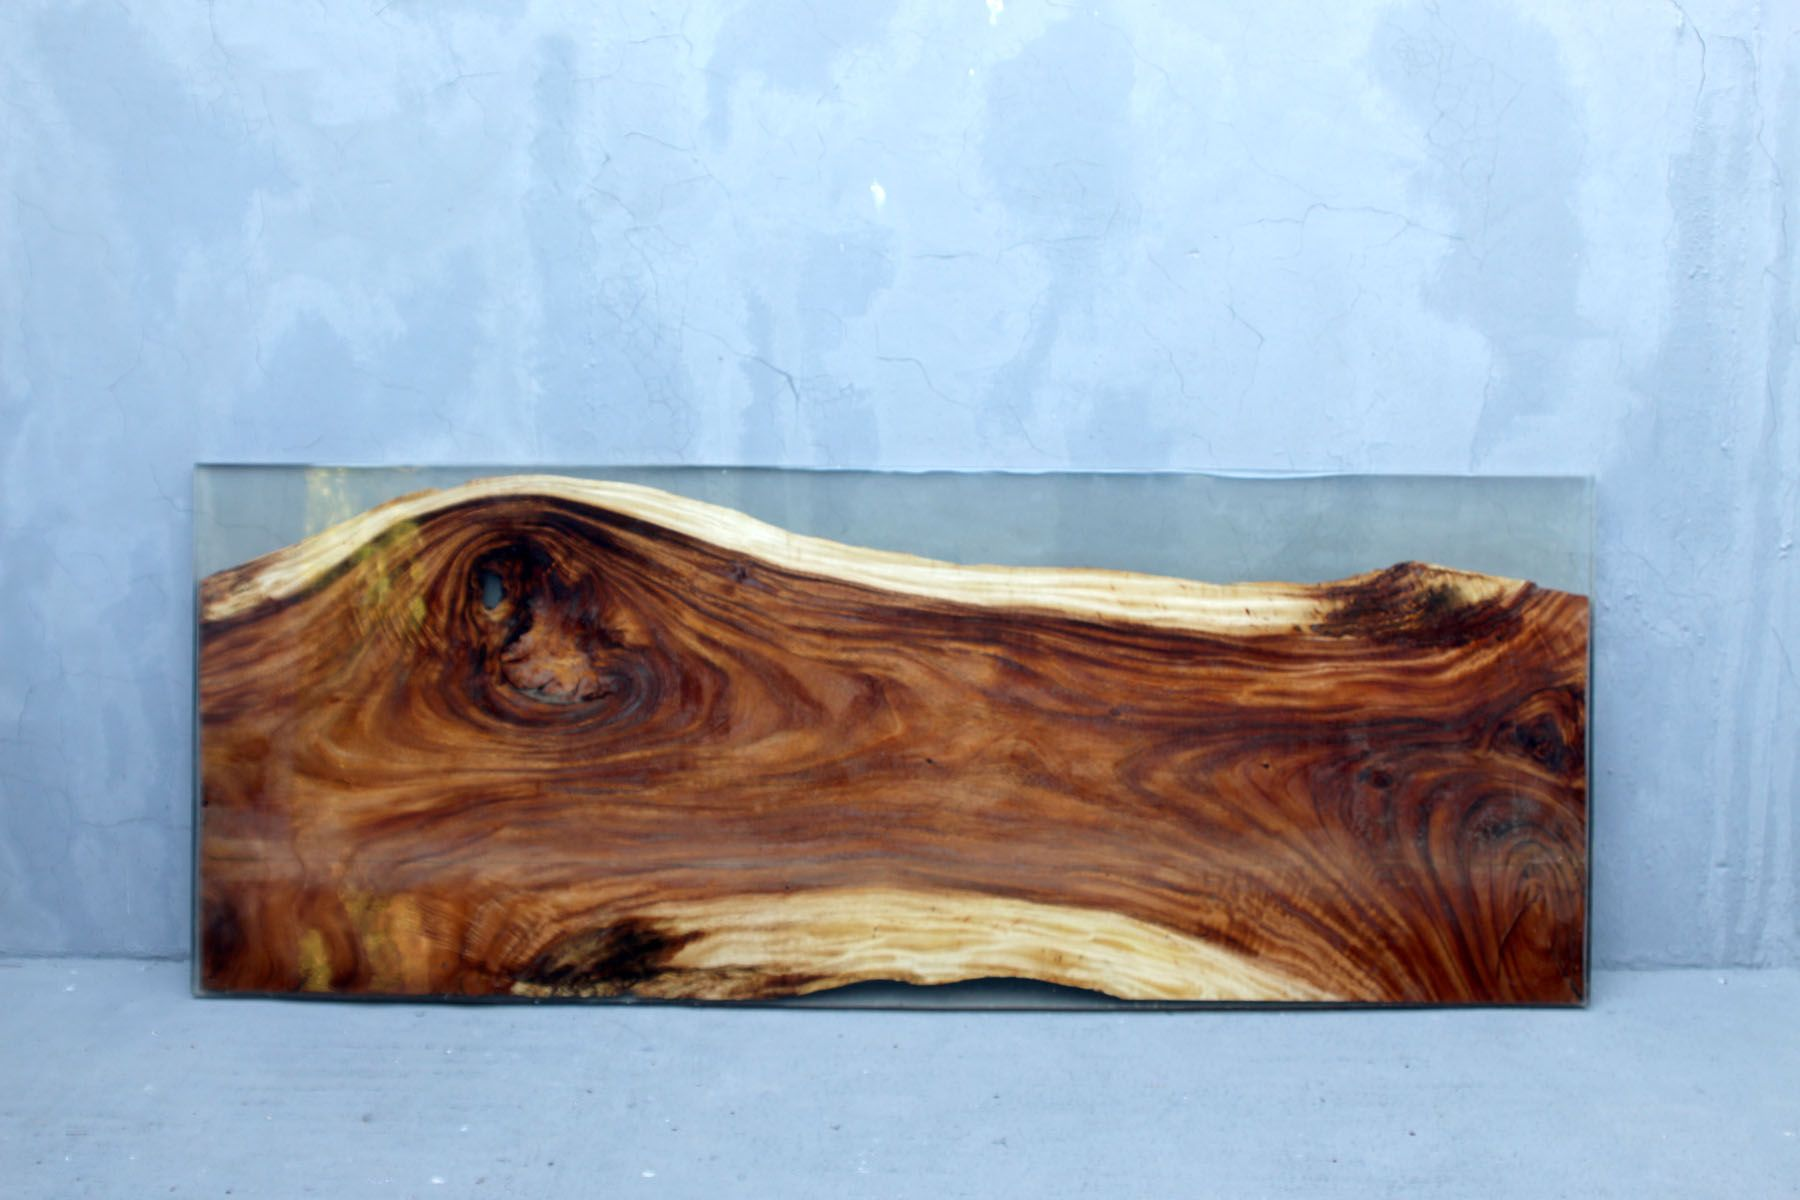 Inquire at dominique@yabdesign.com MaterialAcacia Wood and Clear Cast Resin Lenght (cm)244 Width (cm)90 Height (cm) 75 CBM2.290 Lenght (inch)96.06 Width (inch)35.43 Height (inch)29.53  MaterialAcacia Wood and Clear Cast Resin Lenght (cm)244 Width (cm)90 Height (cm) 75 CBM2.290 Lenght (inch)96.06 Width (inch)35.43 Height (inch)29.53